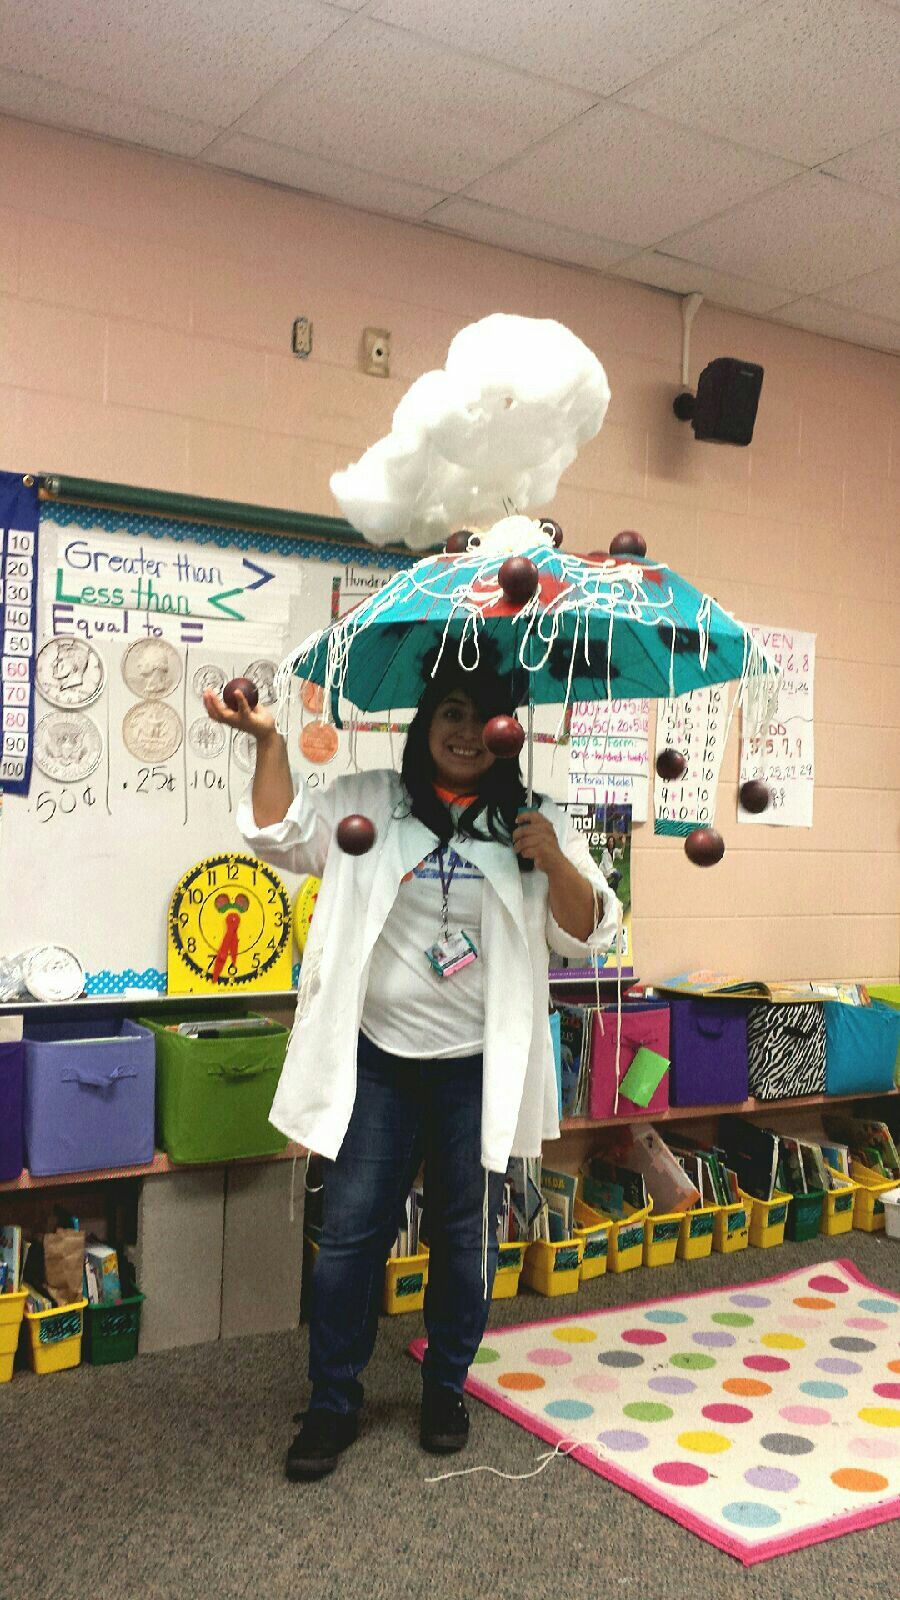 School Character Parade, Cloudy with a Chance of Meatballs Costume!,teacher book character costume, book character costume #characterdayspiritweek